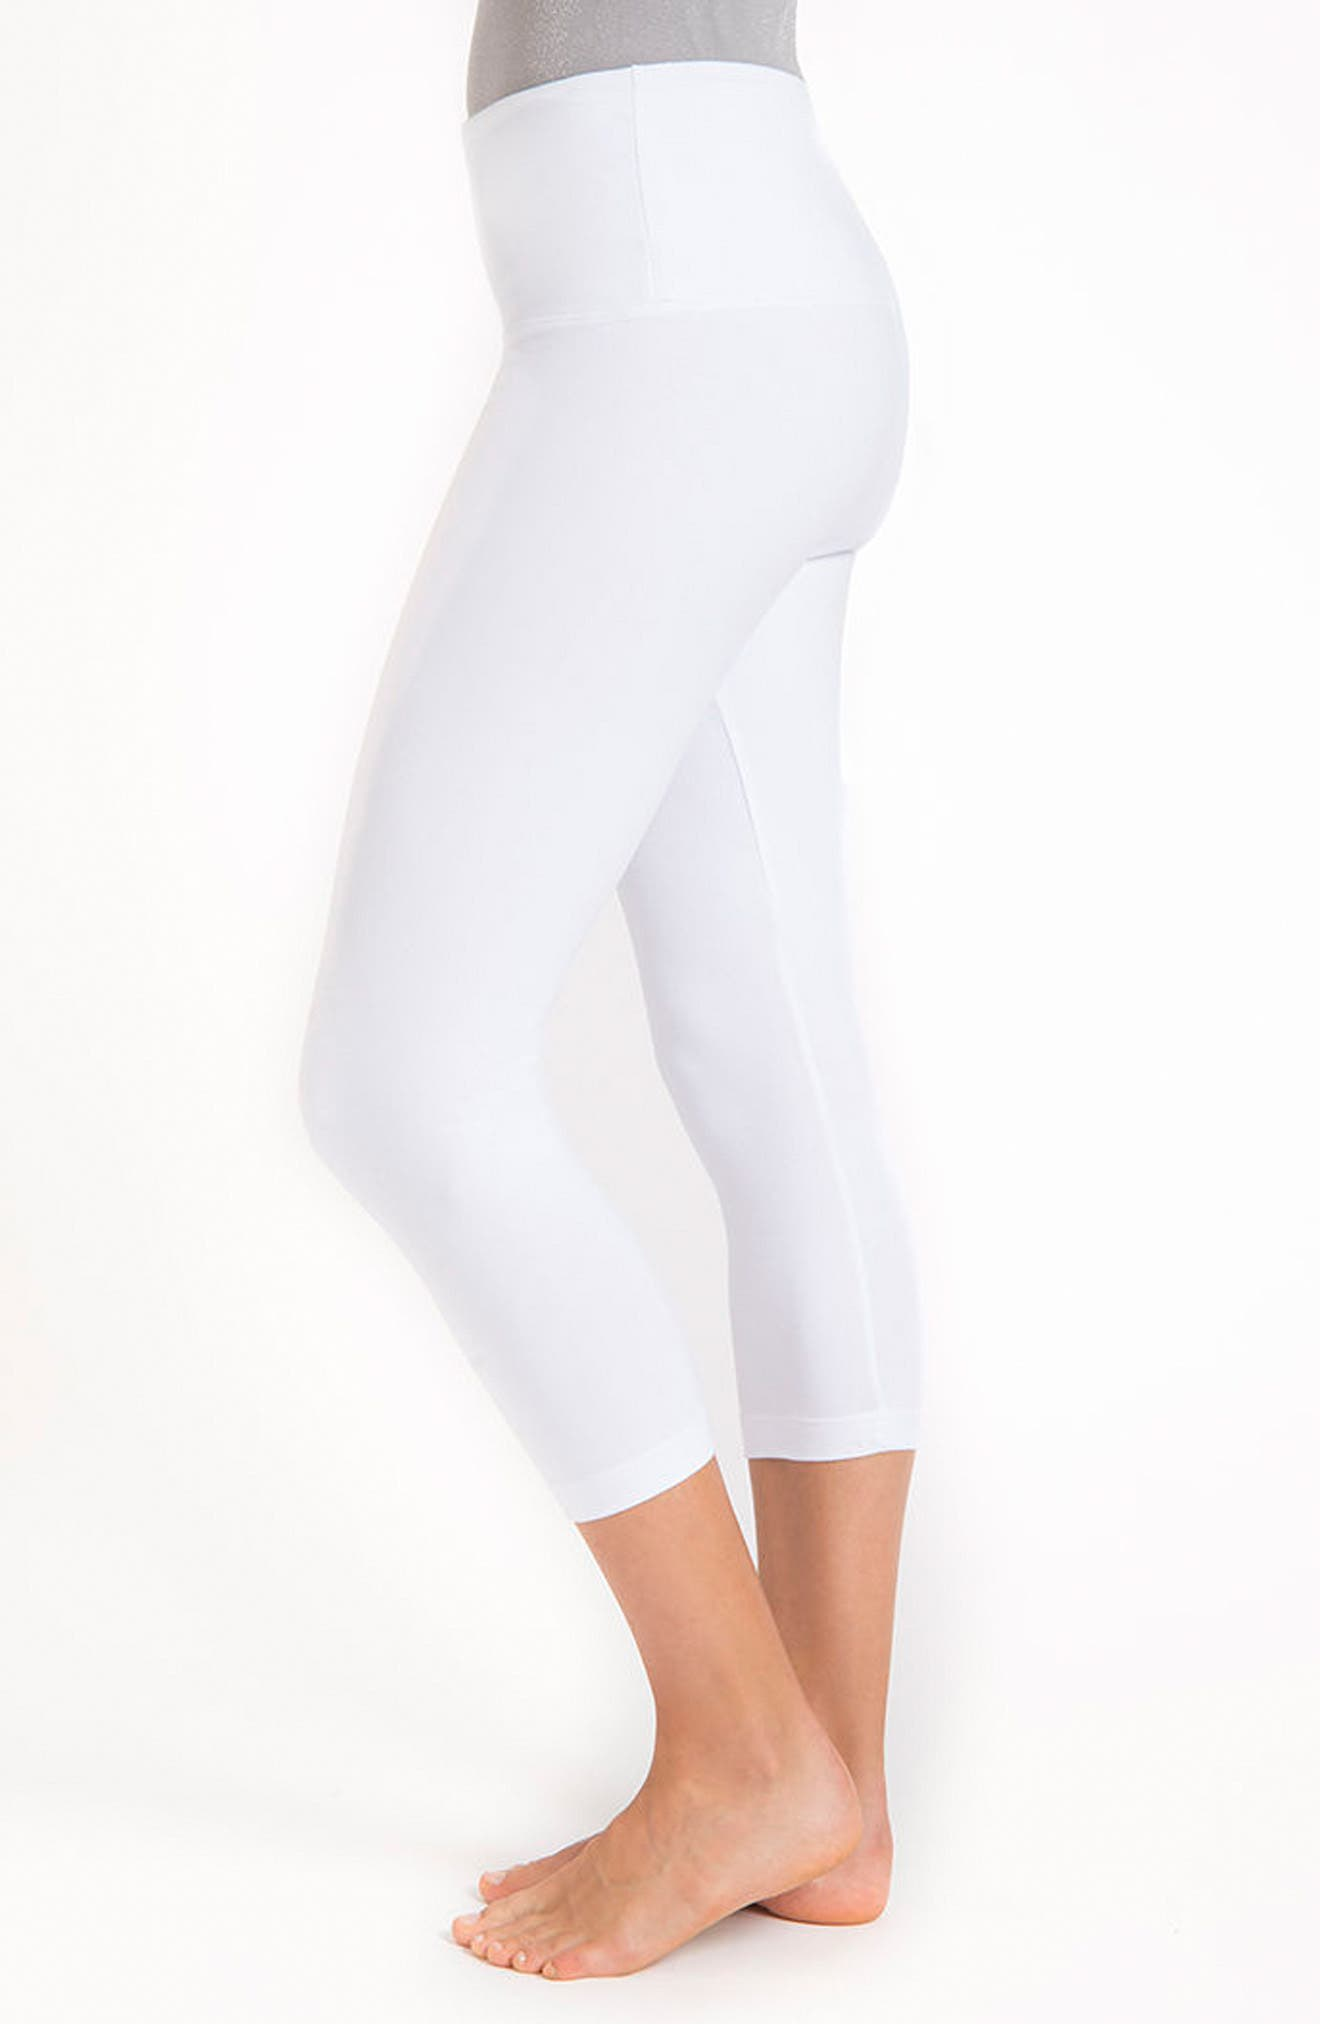 Control Top High Waist Capris,                             Alternate thumbnail 8, color,                             WHITE